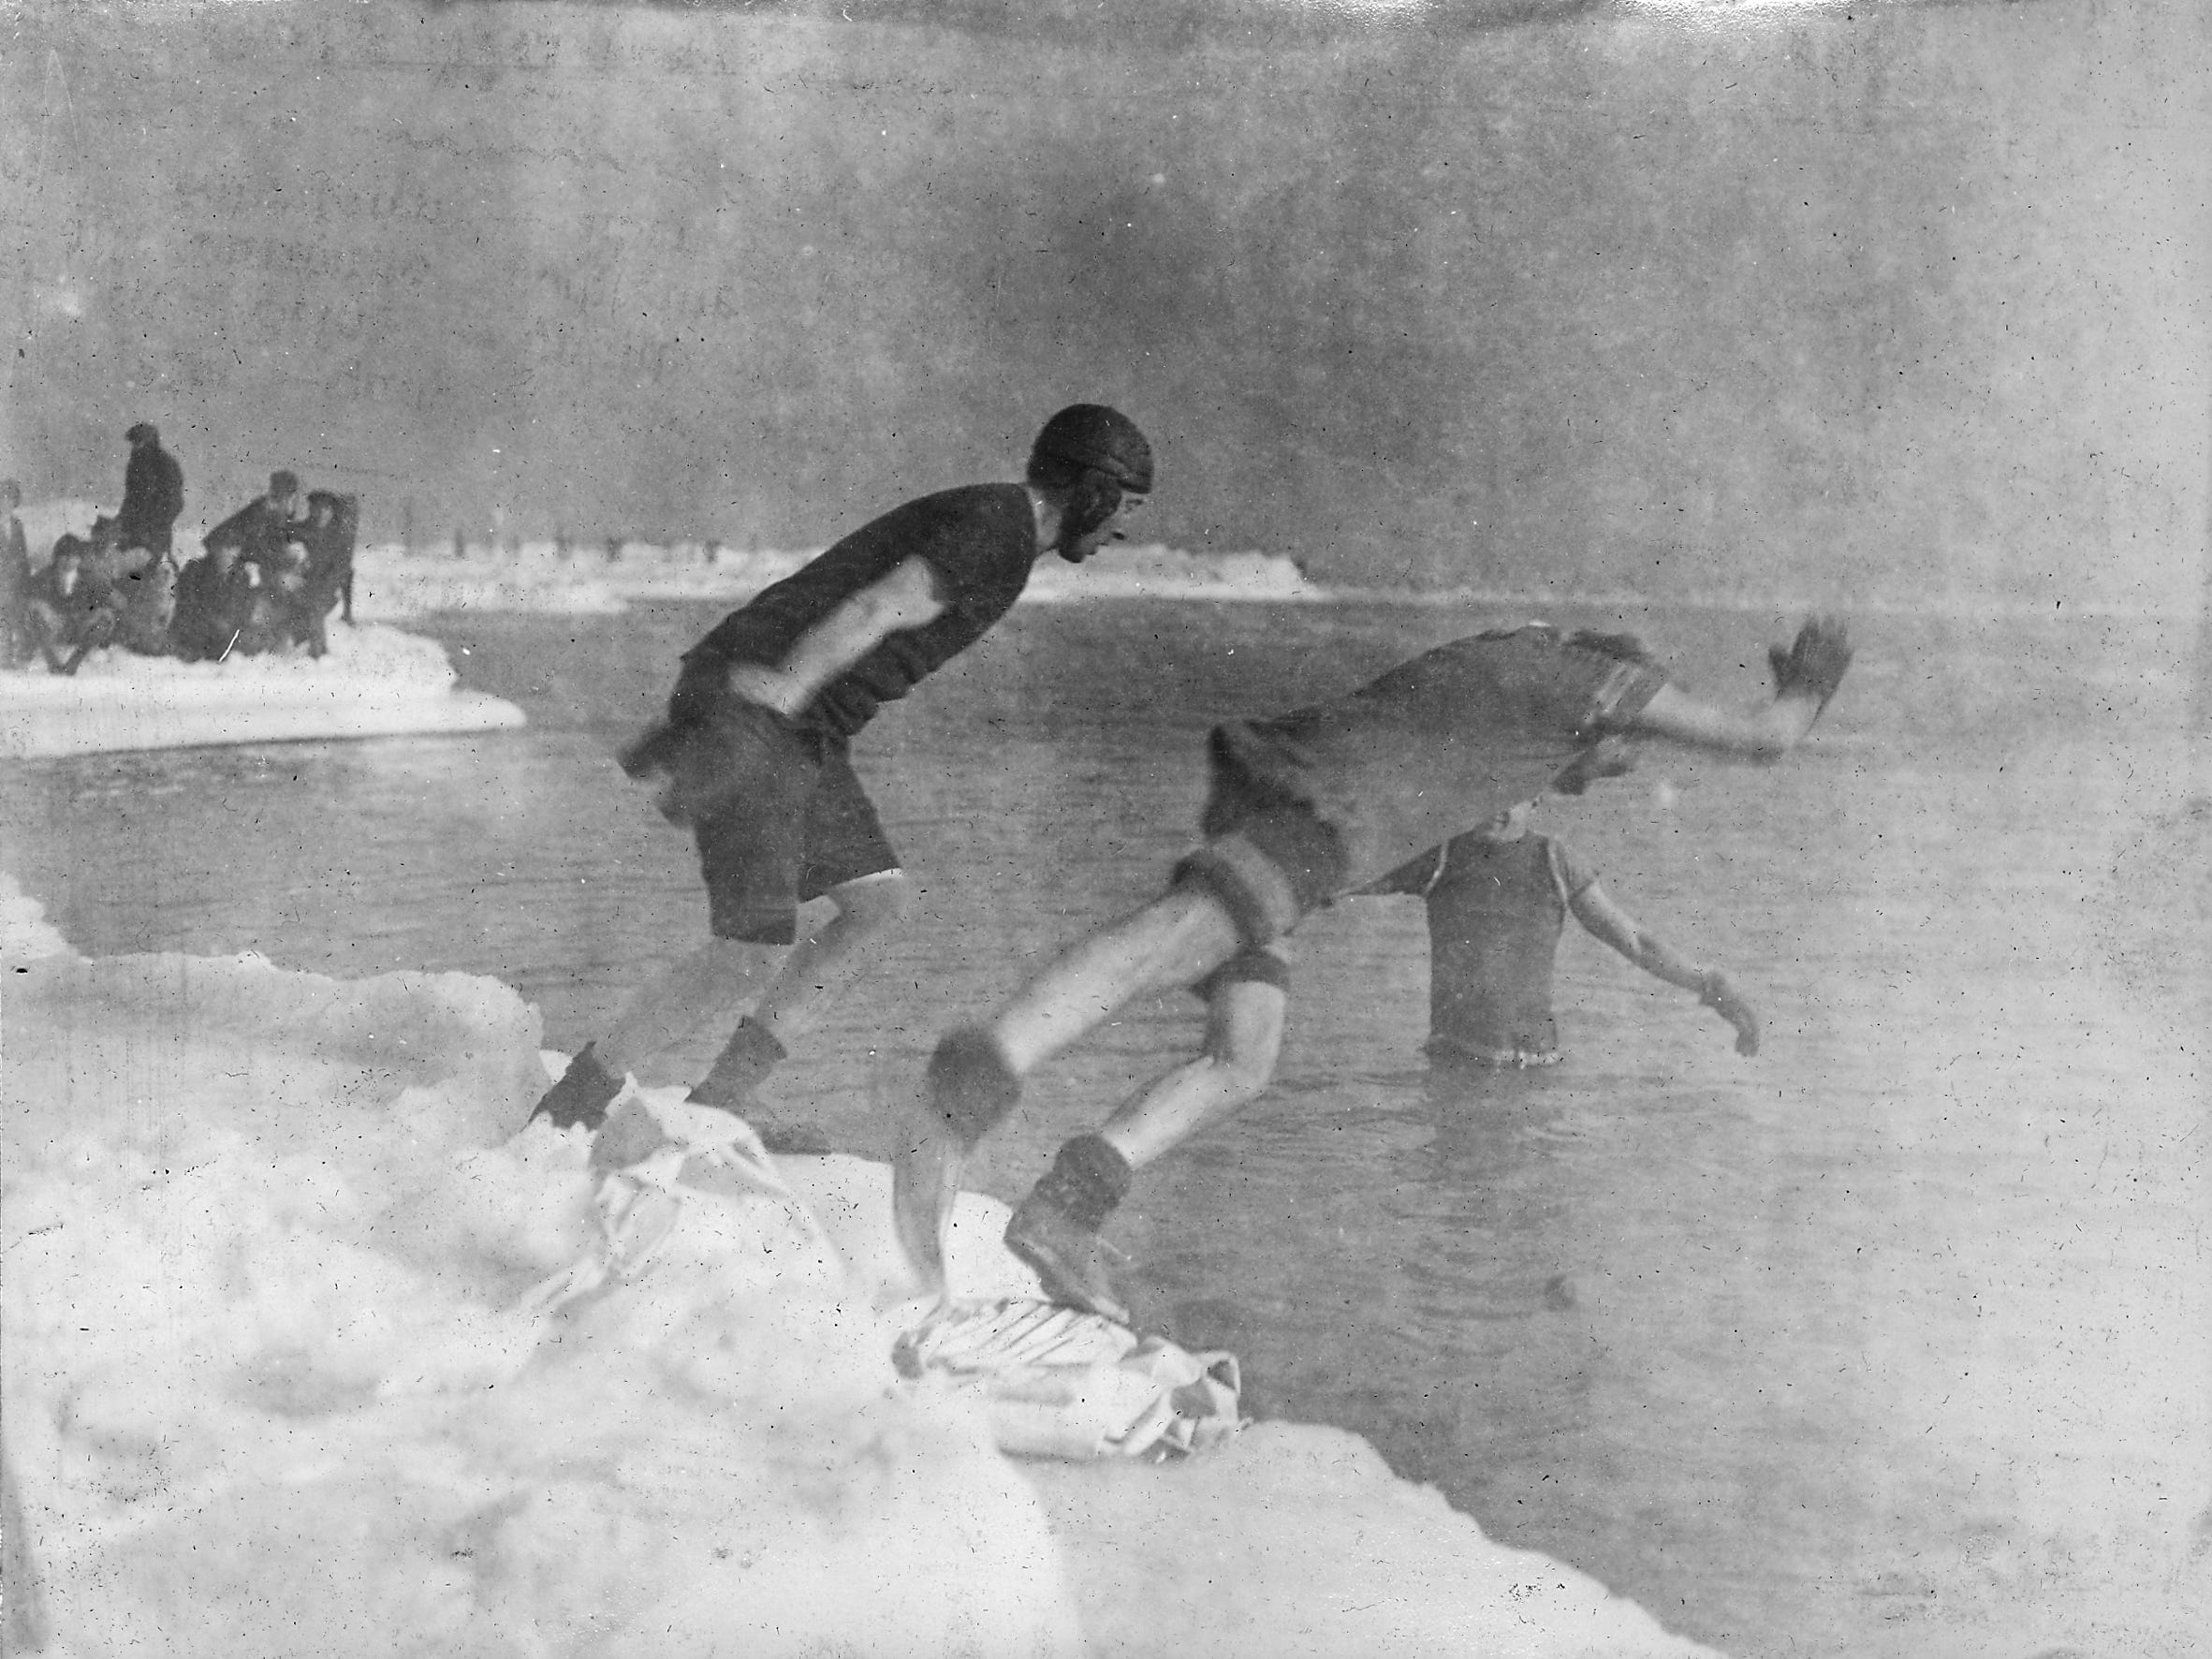 A pair of the city's earliest known polar plungers — Frank Sutter (left) and Jim Brazell — jump from the icy shore to join Gustav Marx in Lake Michigan in a photo dated Dec. 31, 1916.